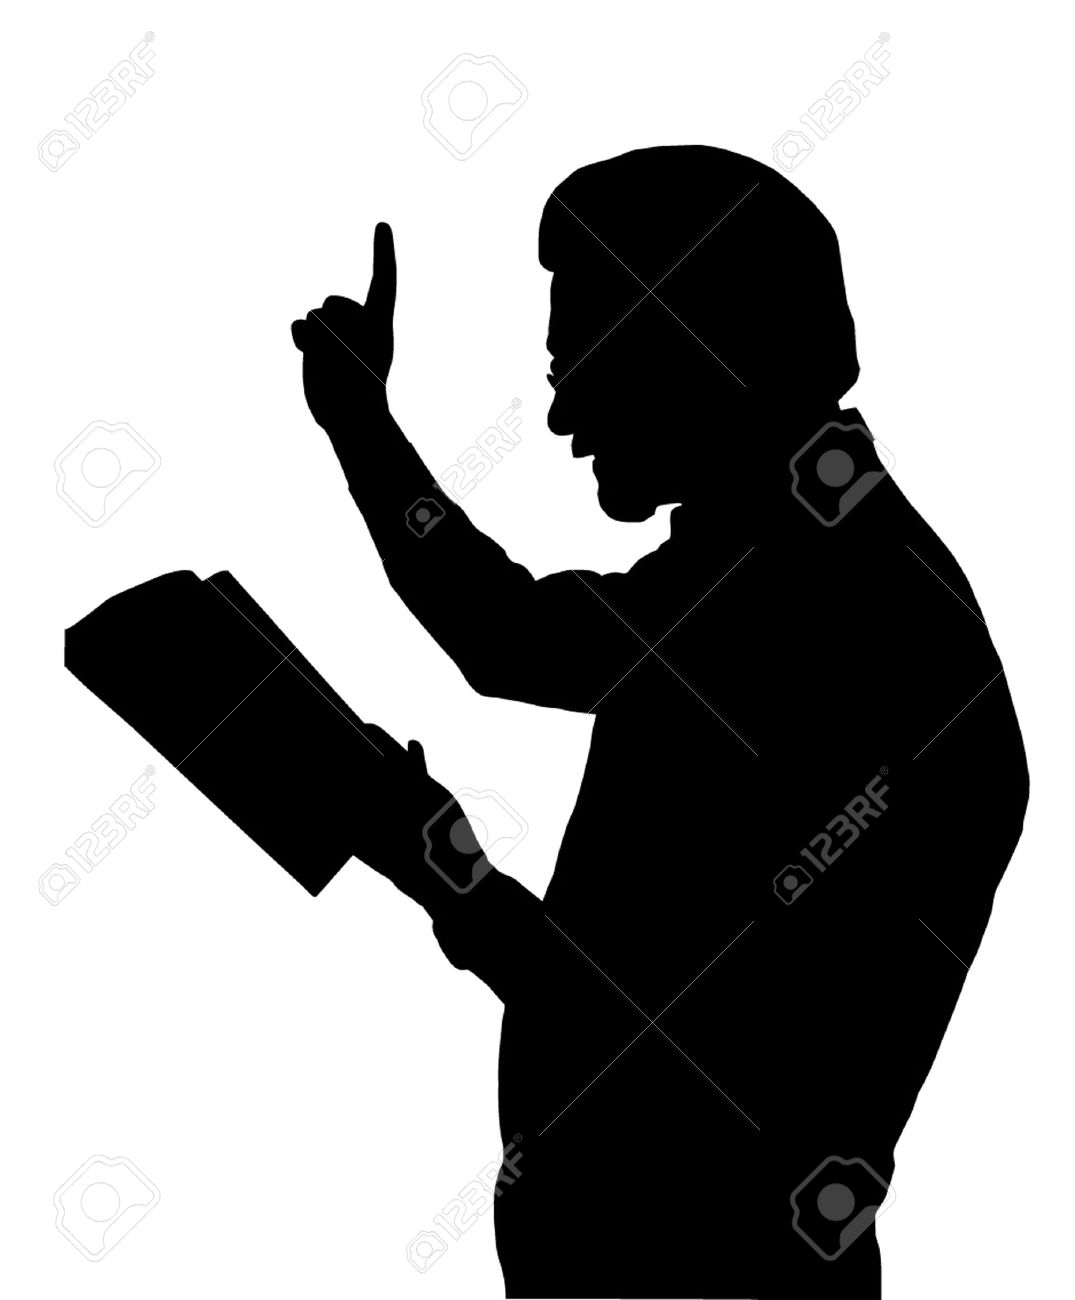 hight resolution of preacher reading from bible with raised finger stock vector 12480096